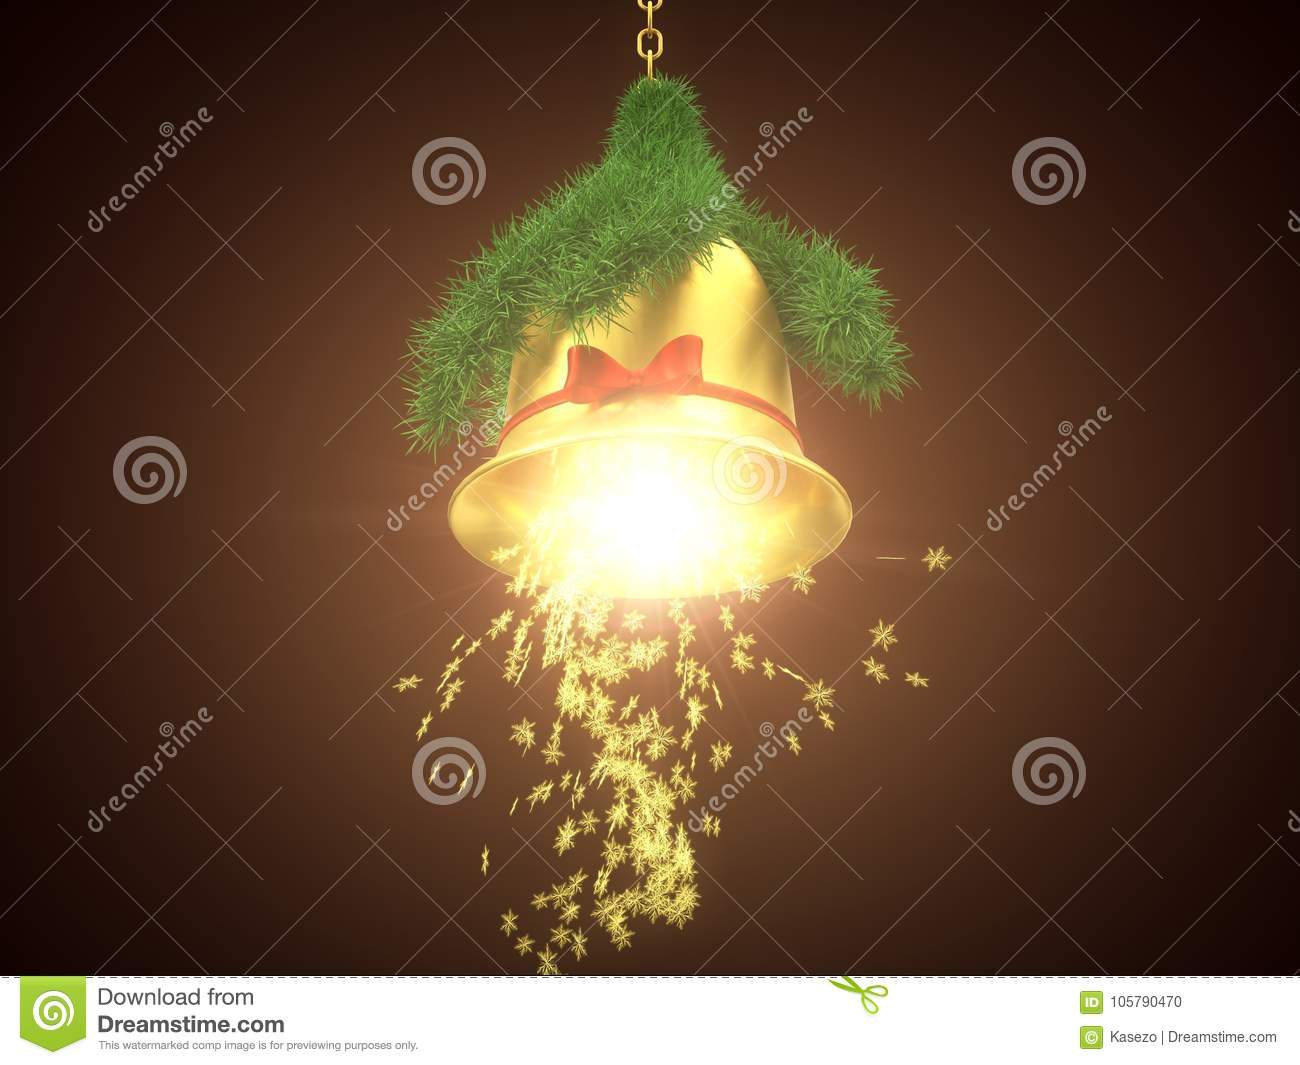 download golden christmas bell with light beam 3d illustration stock illustration illustration of